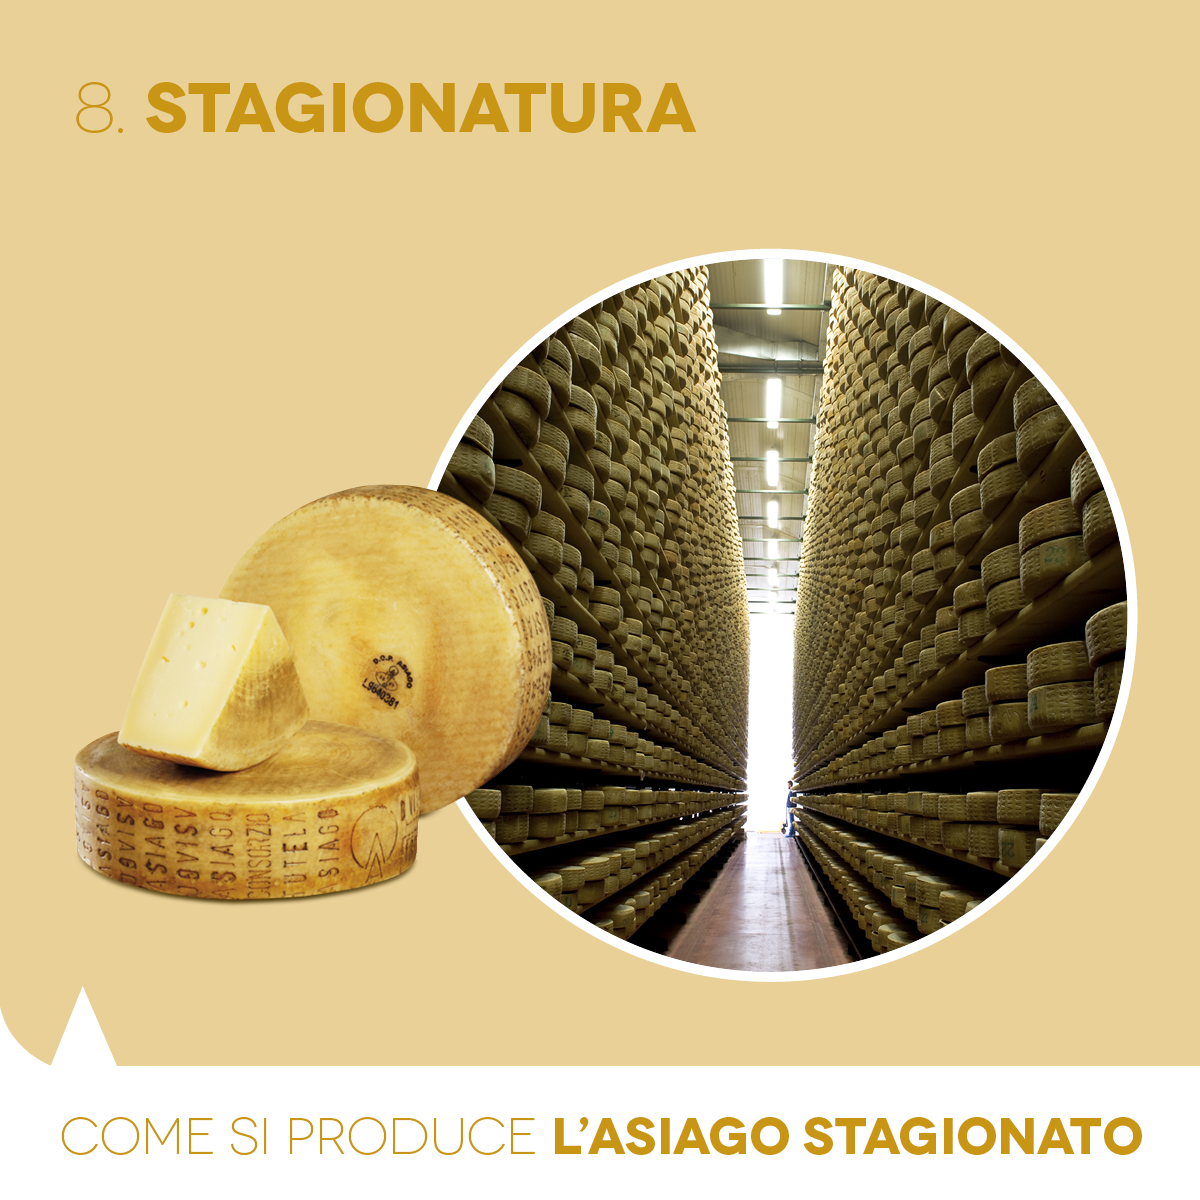 Aged PDO Asiago: how it is made. The seasoning.